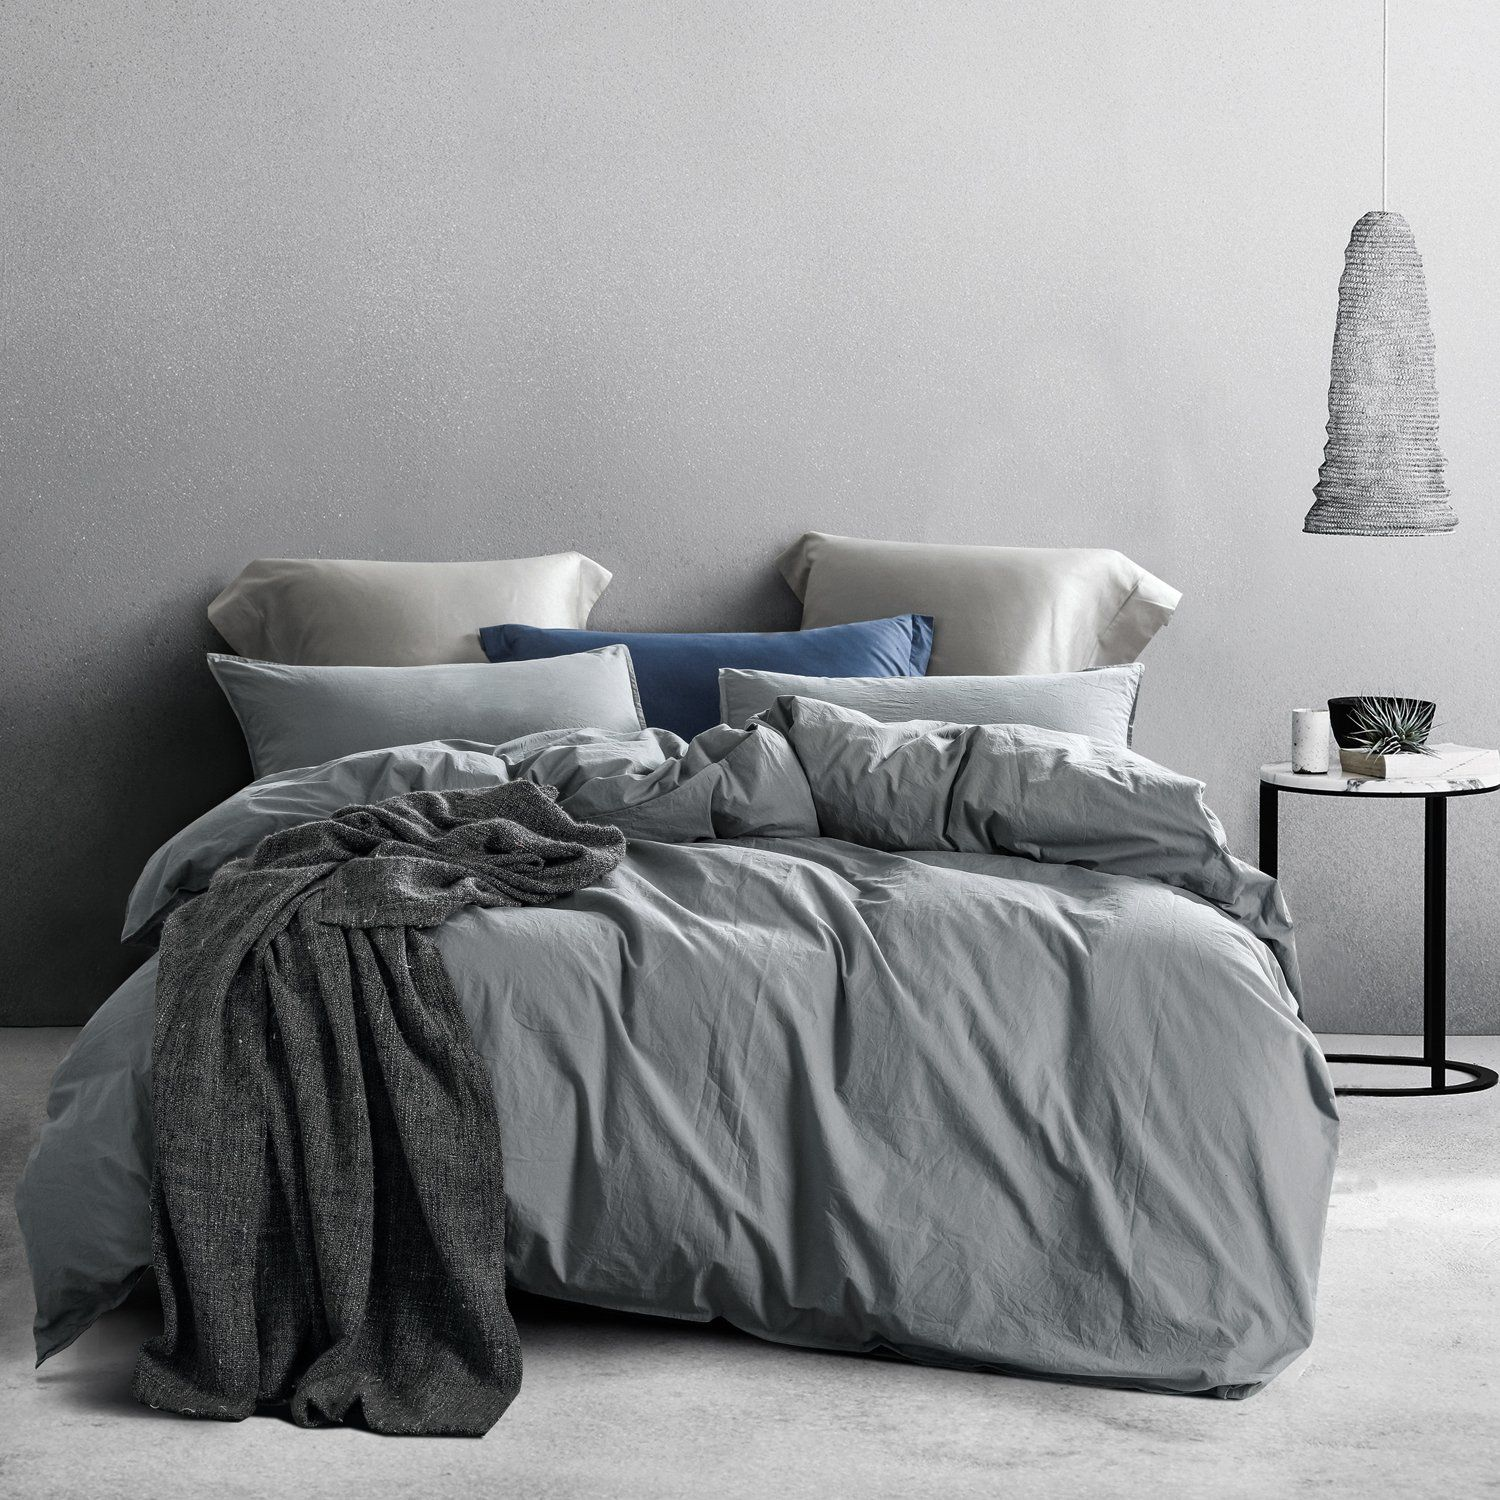 3 Pieces Washed Cotton Duvet Cover Set Grey Matching Bedding